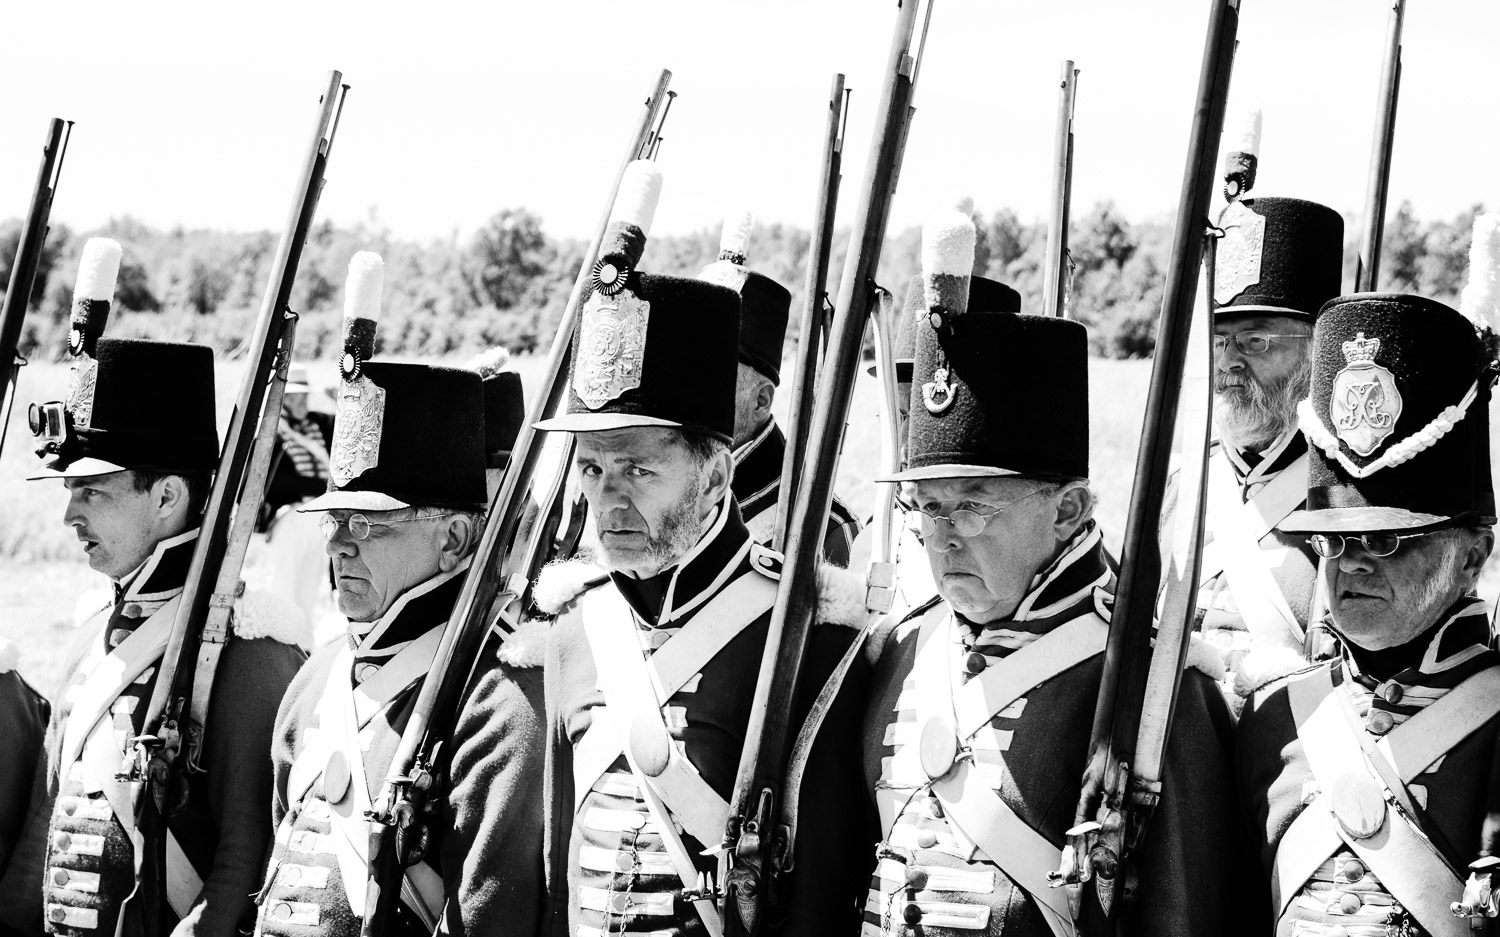 Battle of 1812- Soldiers on a hot day.